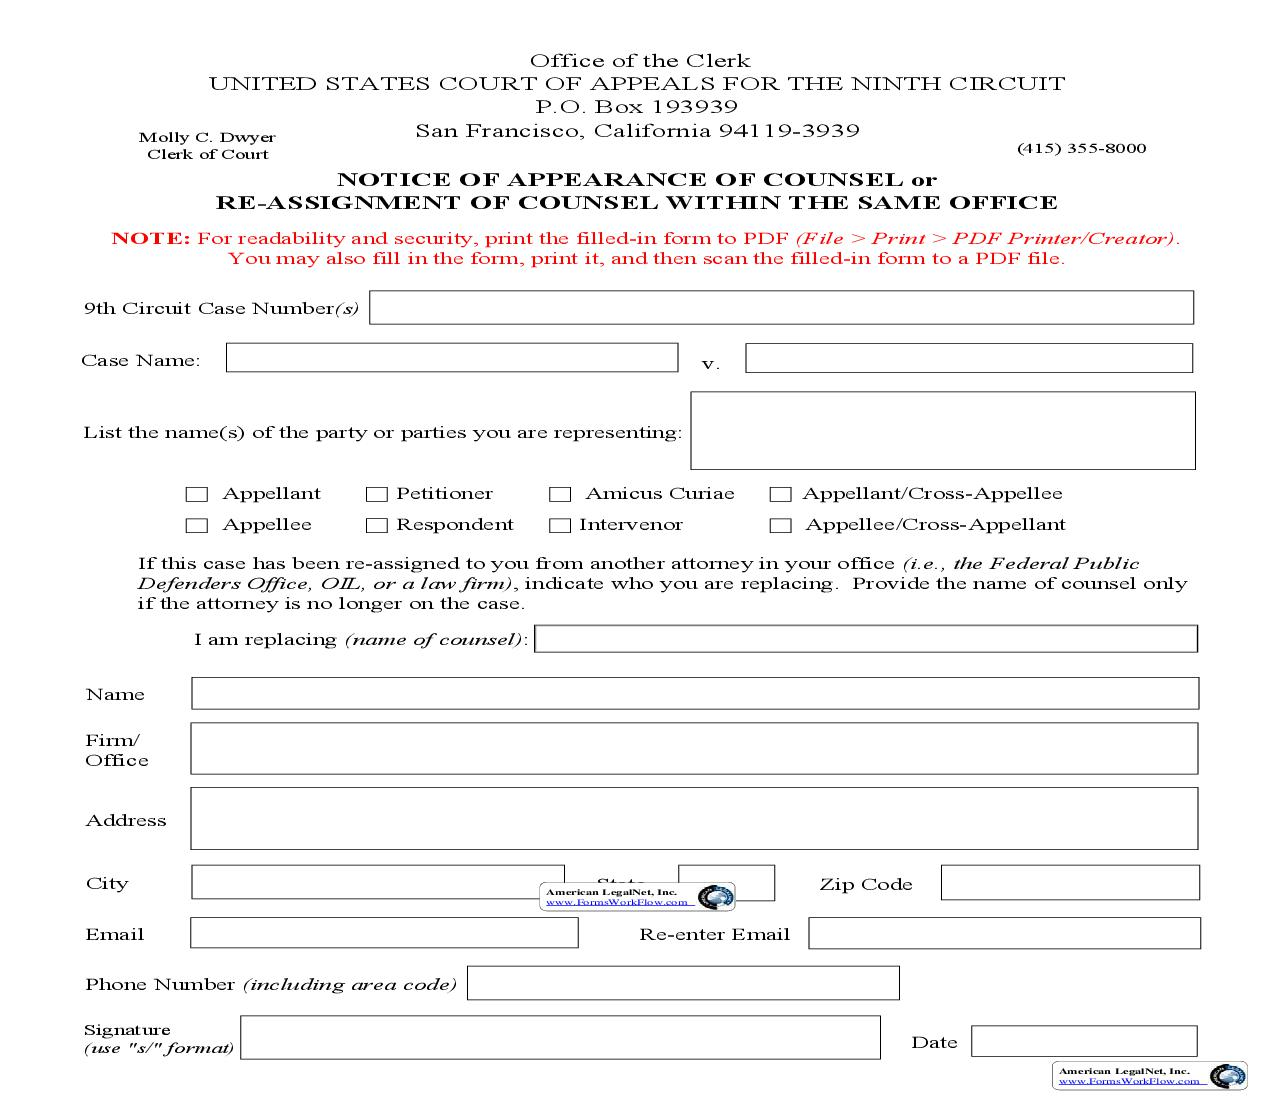 Notice Of Appearance Of Counsel Or Re-Assignment Of Counsel | Pdf Fpdf Doc Docx | Official Federal Forms